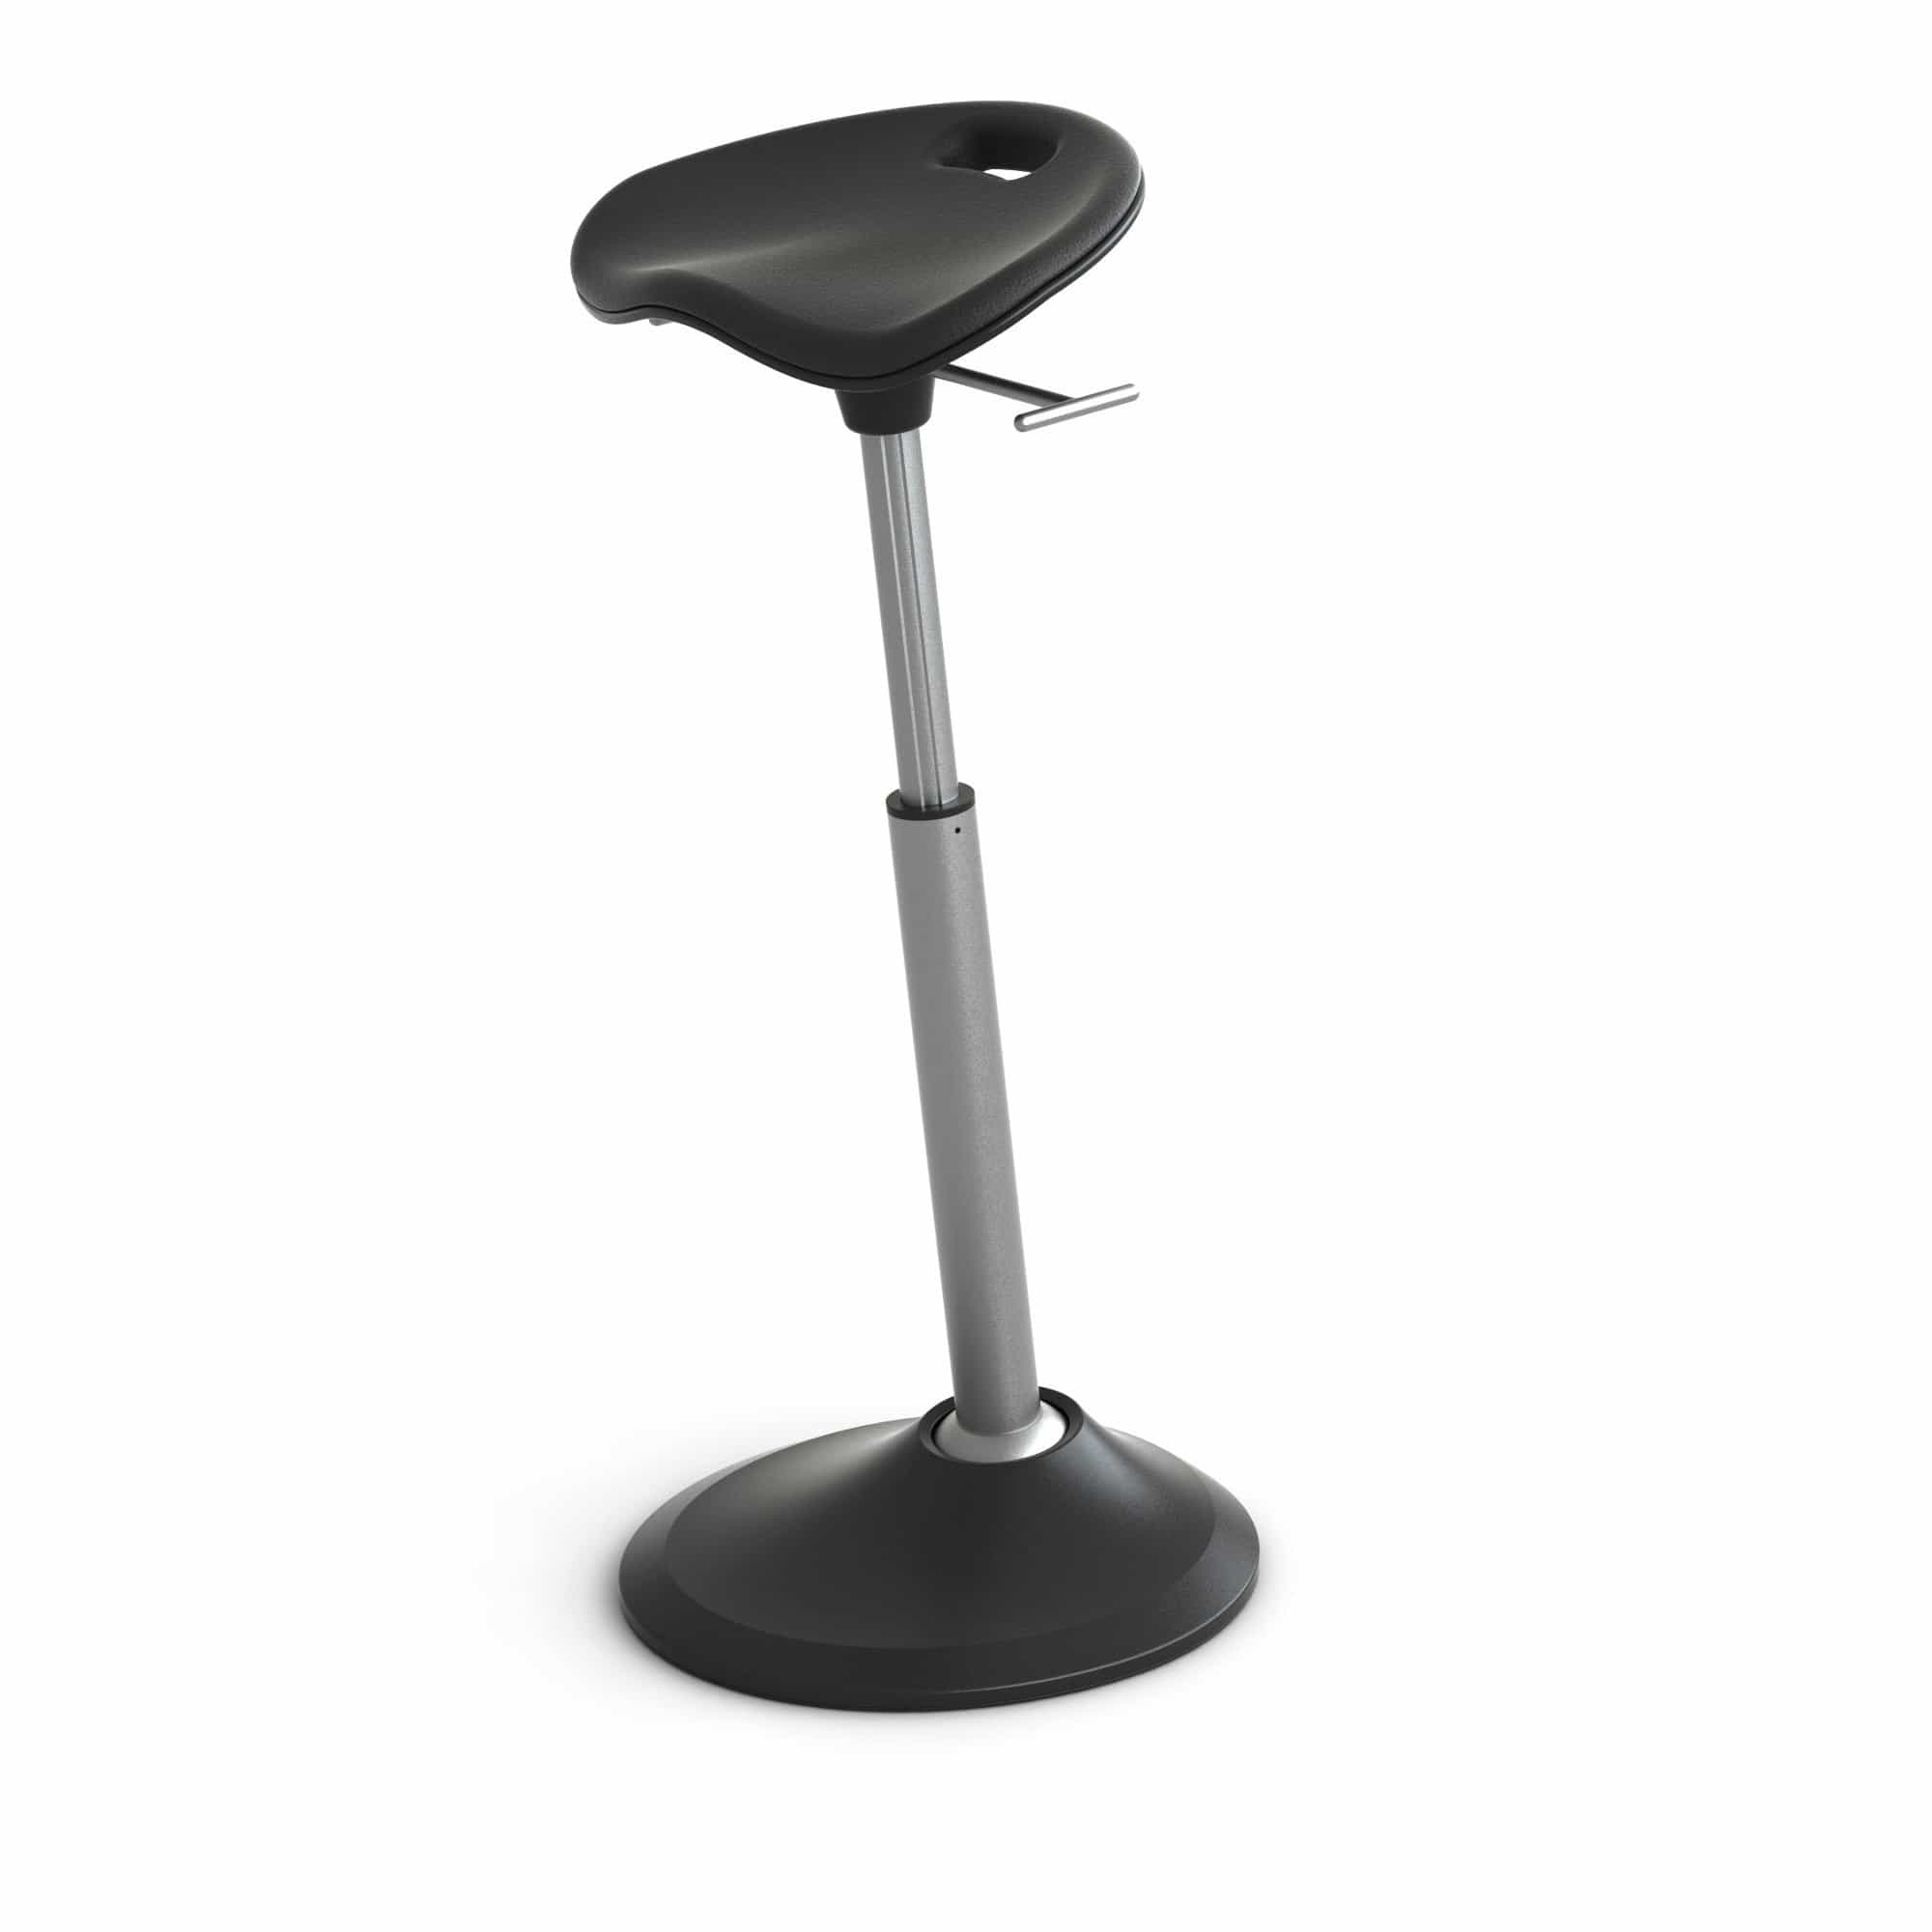 bedinhome - FFS-1000-BK Mobis® Martin Keen Designed Office Standing Flexibility Nylon Matte Black Seat by Focal Upright™ - Safco - Mobis Seat